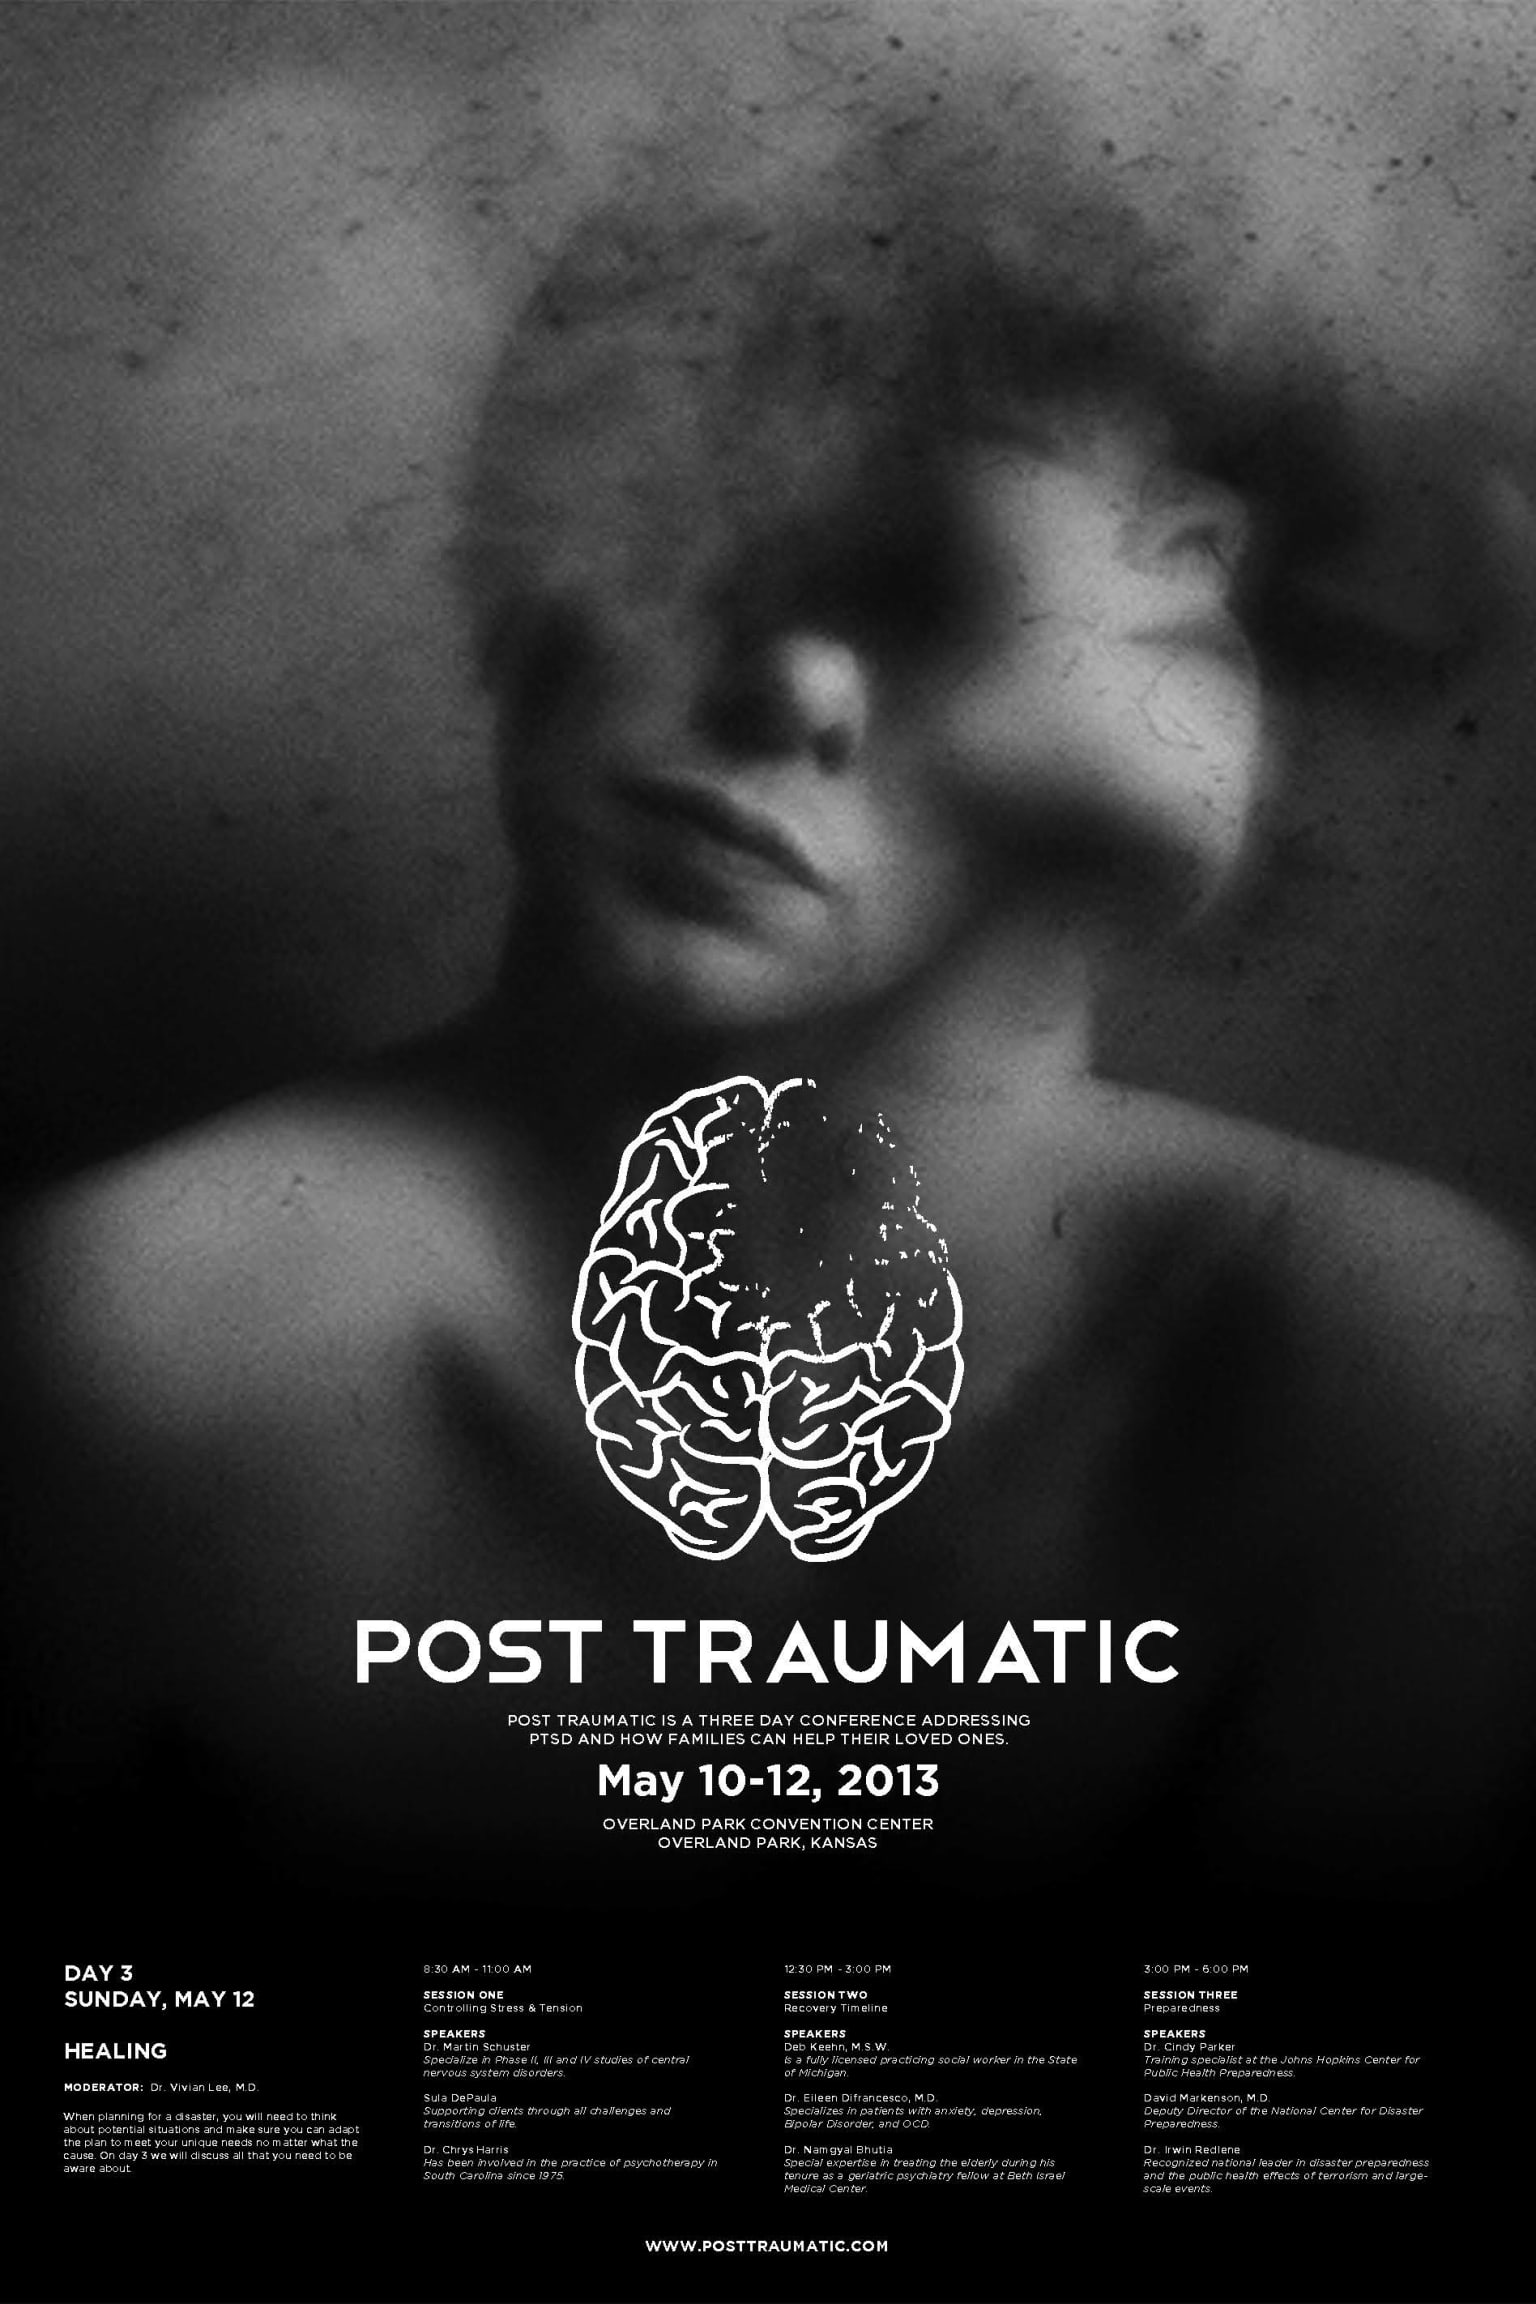 Post Traumatic - A Conference for PTSD victims.